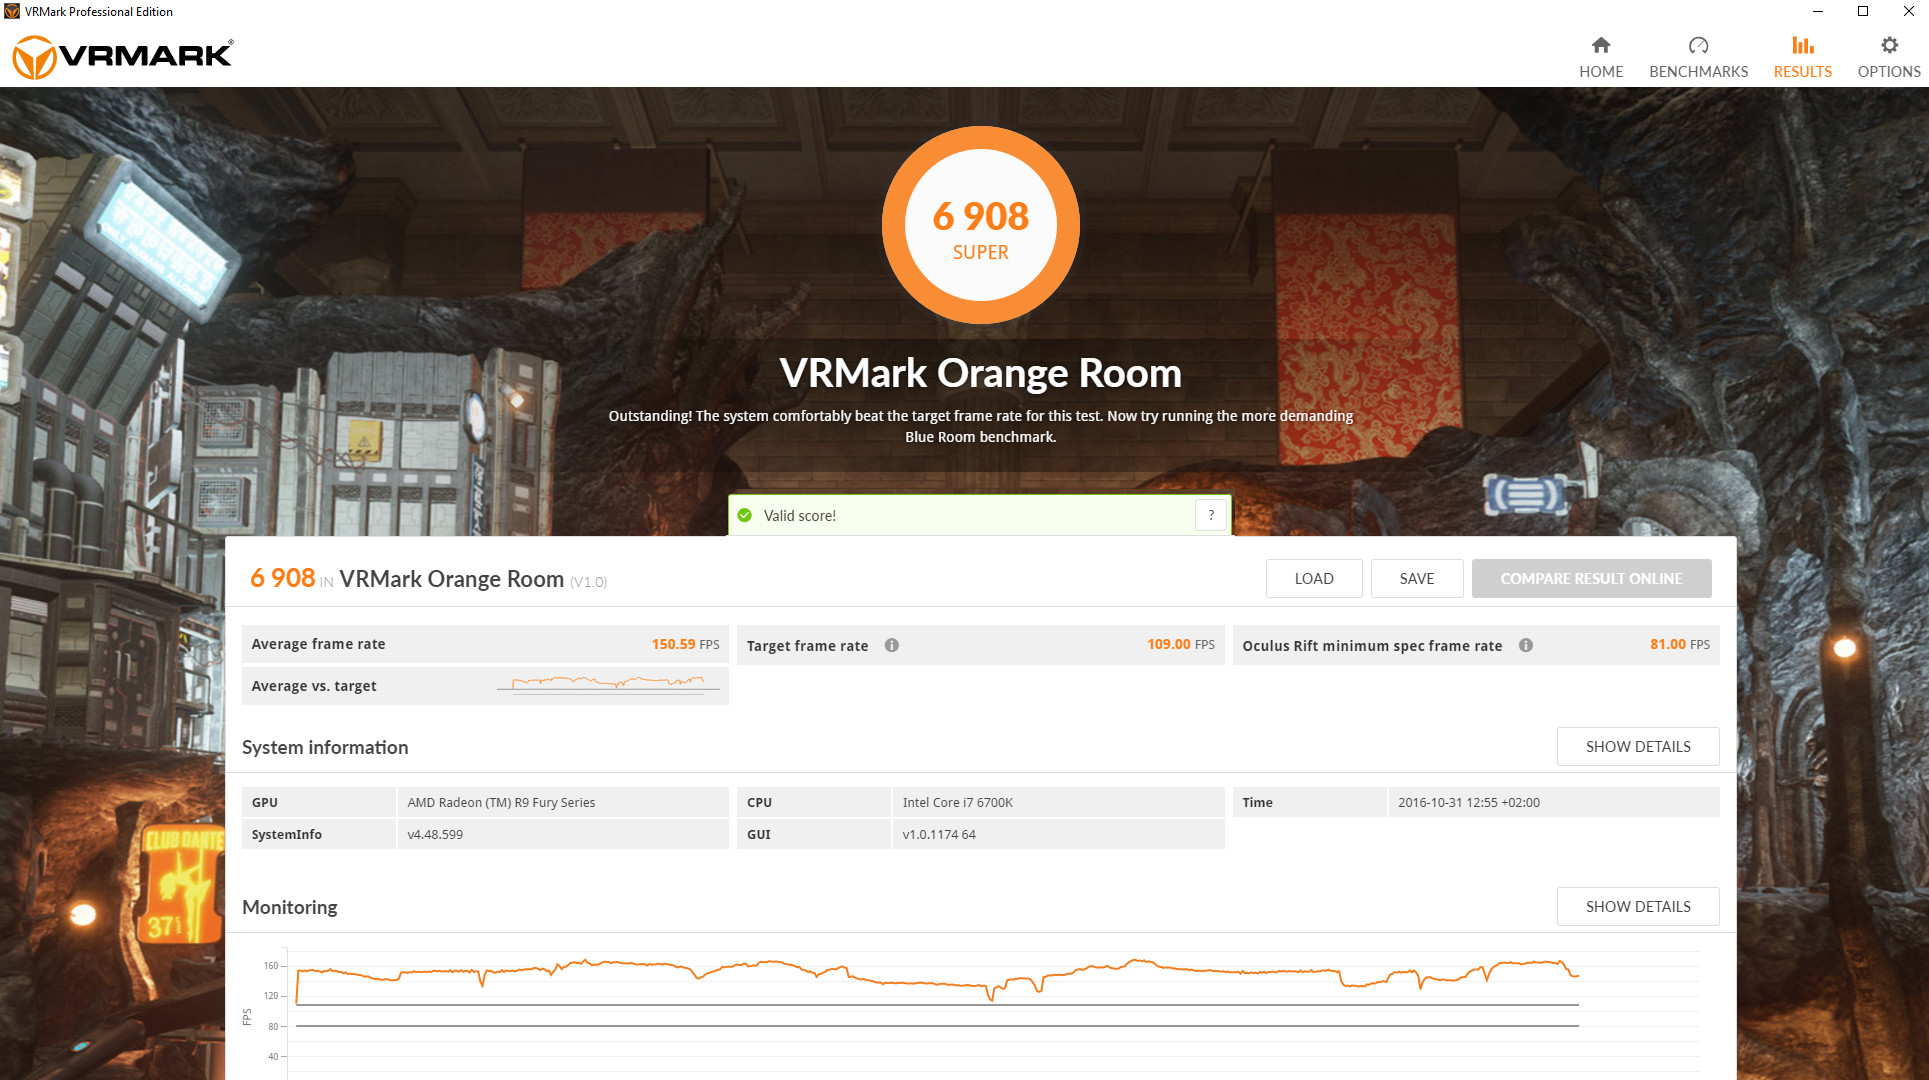 VRMark - the Virtual Reality Benchmark 9